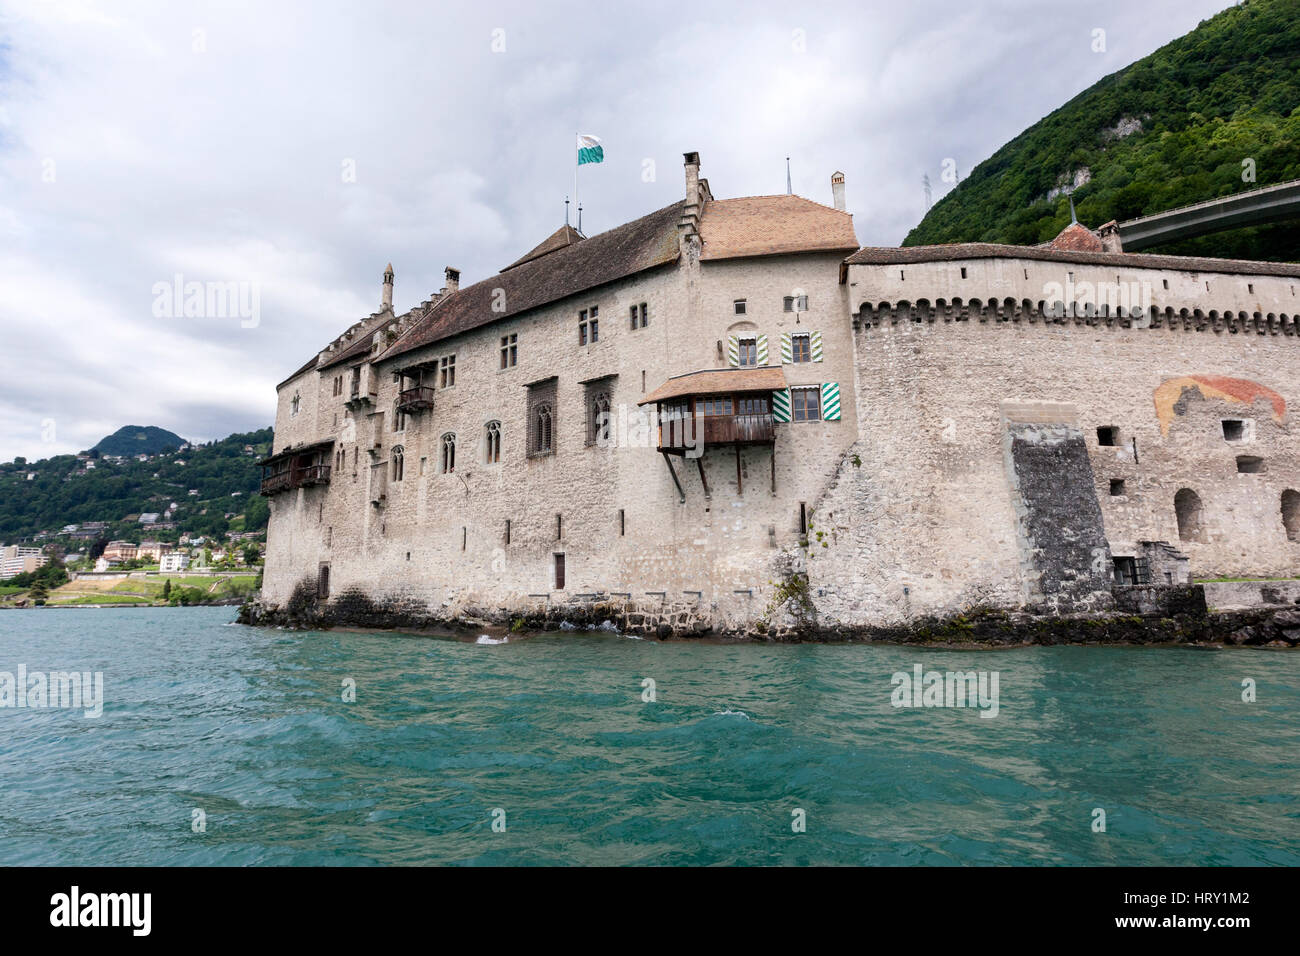 Chillon Castle on Lake Geneva (Lac Léman) from the Steam boat  , Veytaux, 	Switzerland - Stock Image